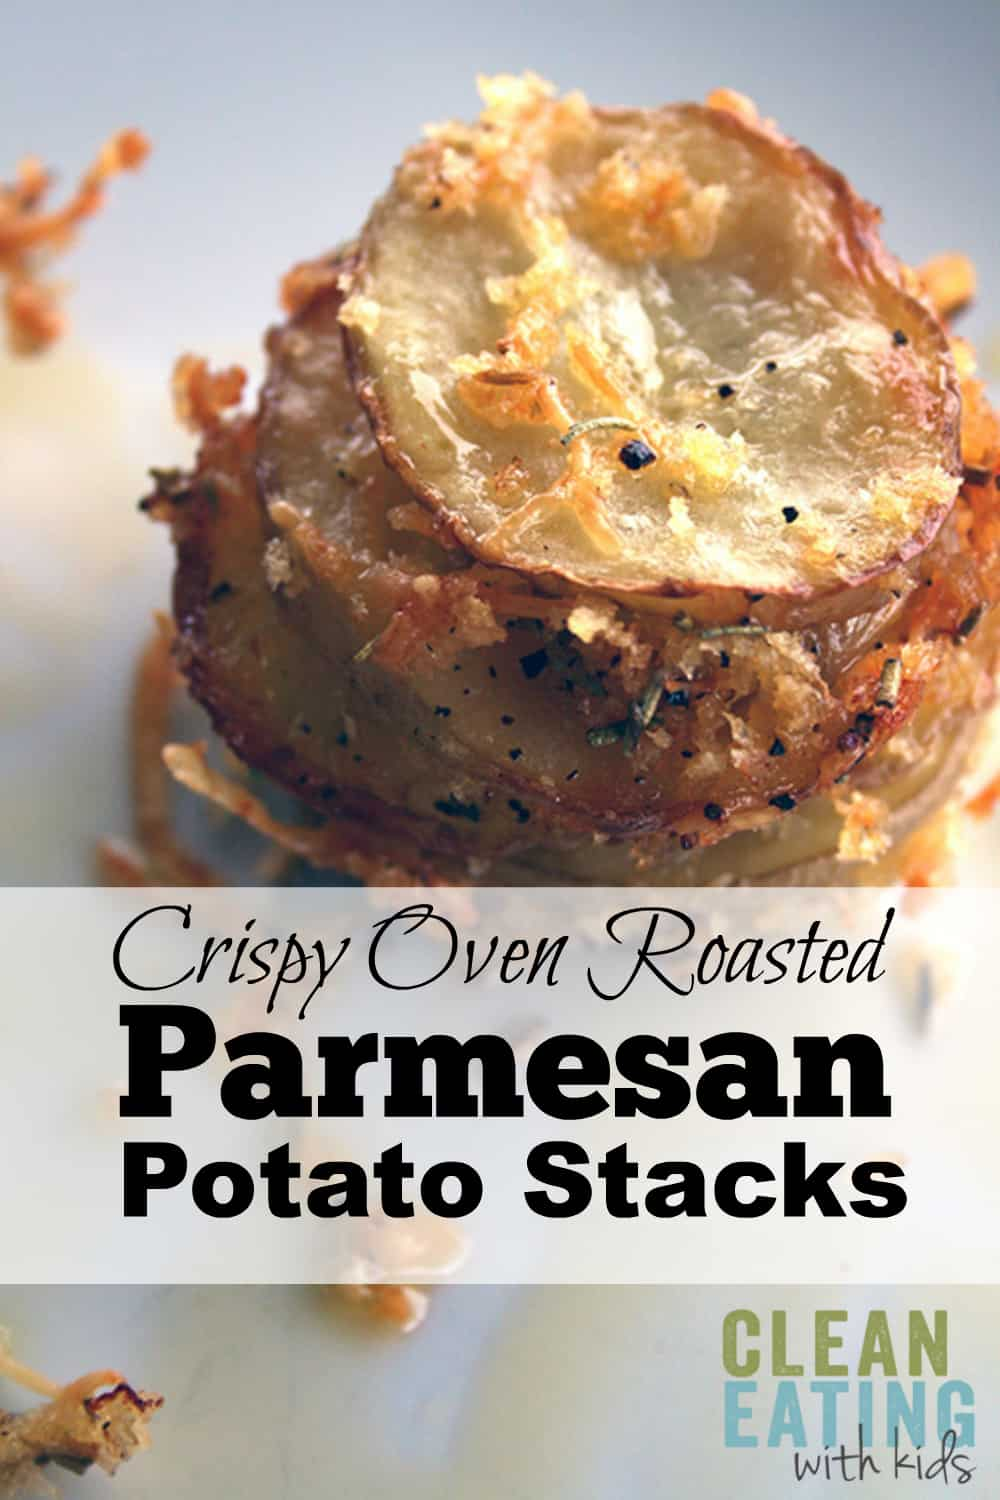 Crispy Parmesan Potato Stacks. Simple, Really delicious and look a little fancy too.